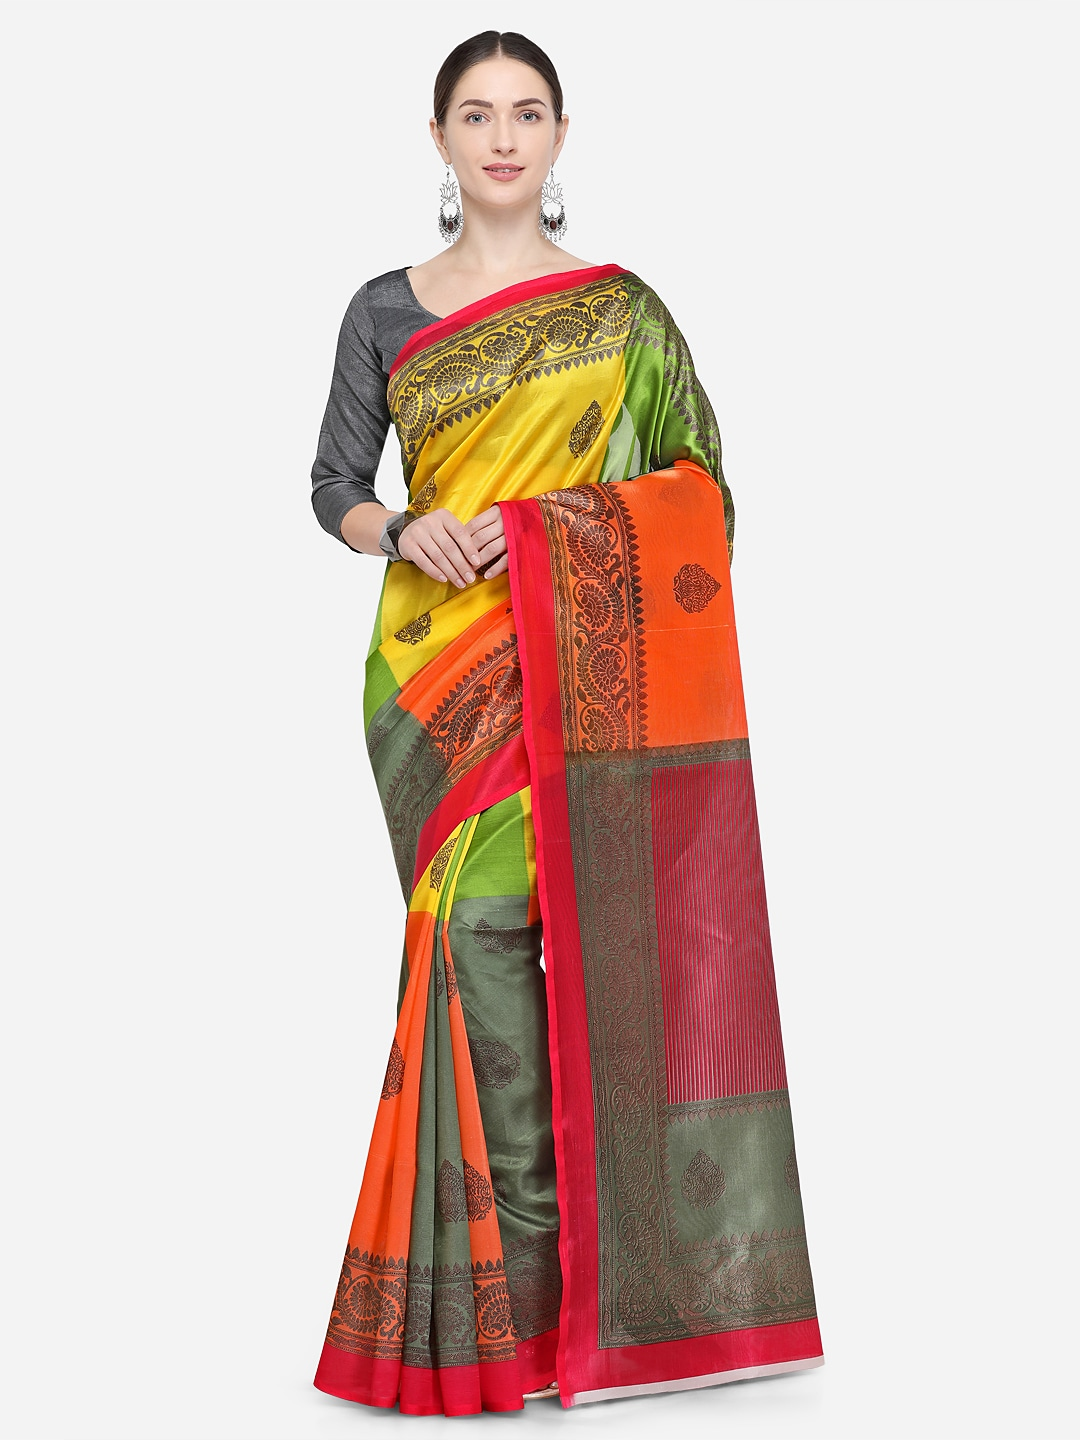 b8a066564c35e Saree - Buy Sarees Online at Best Price in India